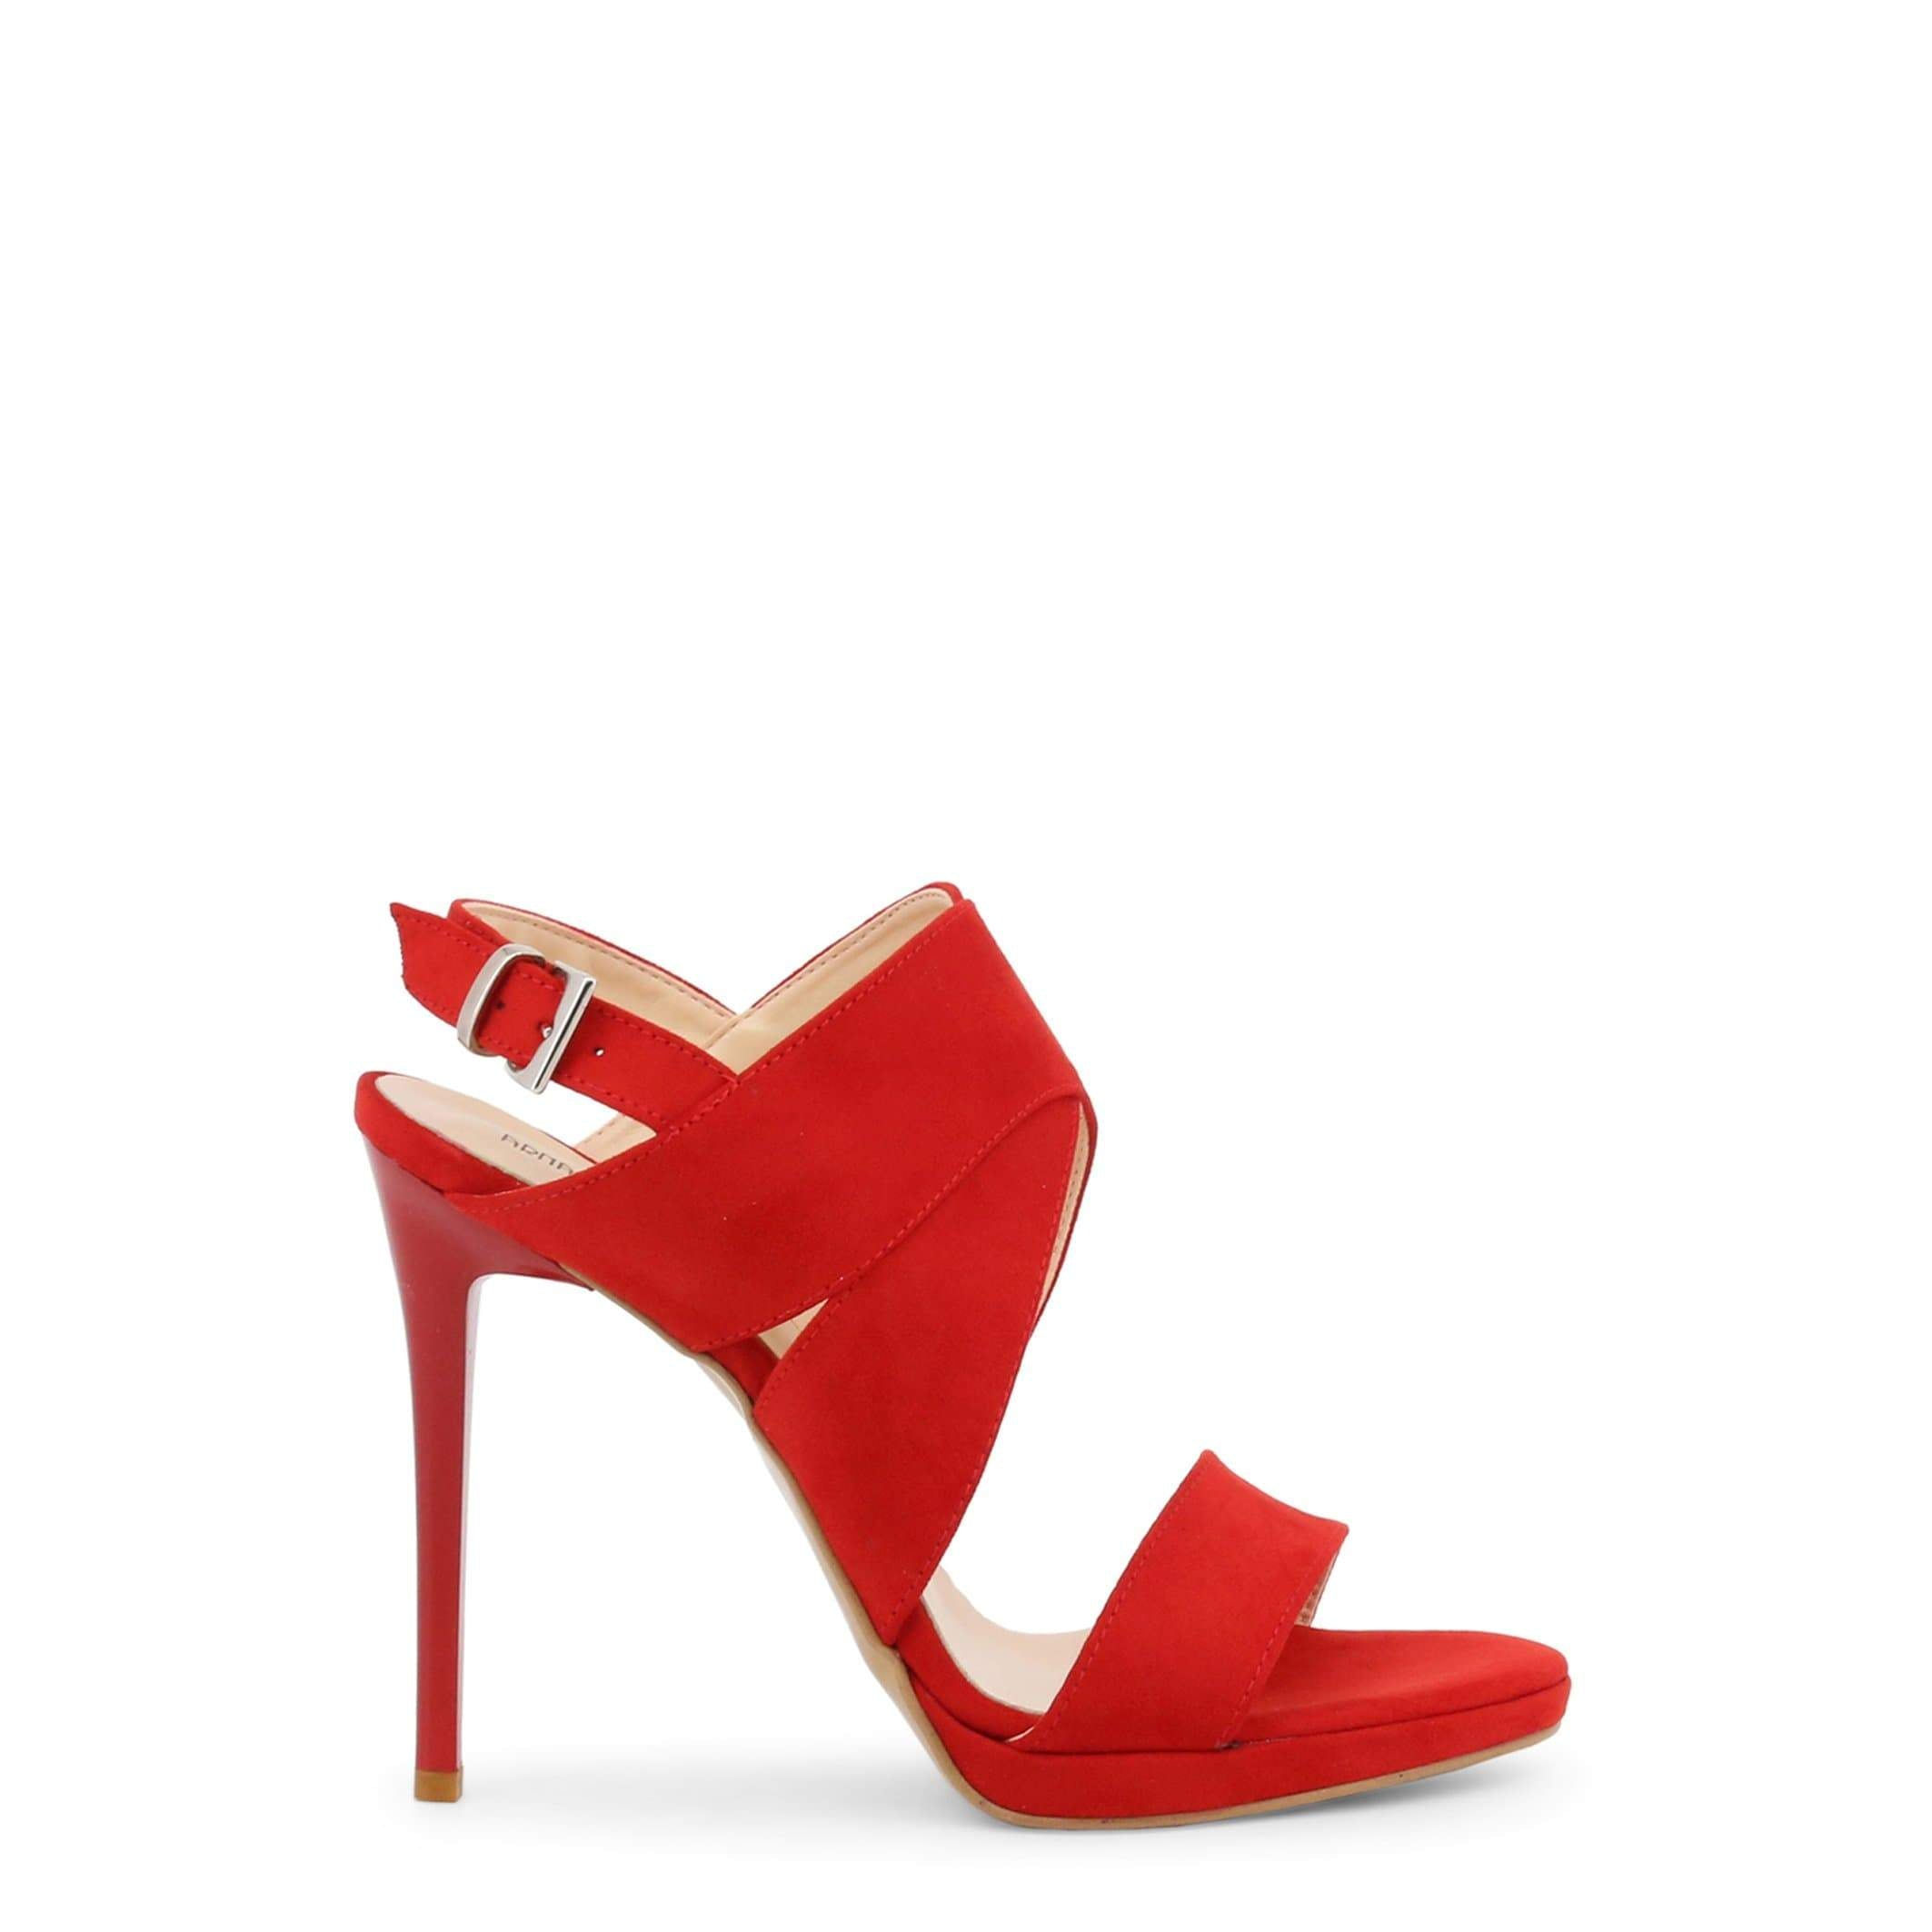 Arnaldo Toscani Shoes Sandals red / EU 36 Arnaldo Toscani - 1218021